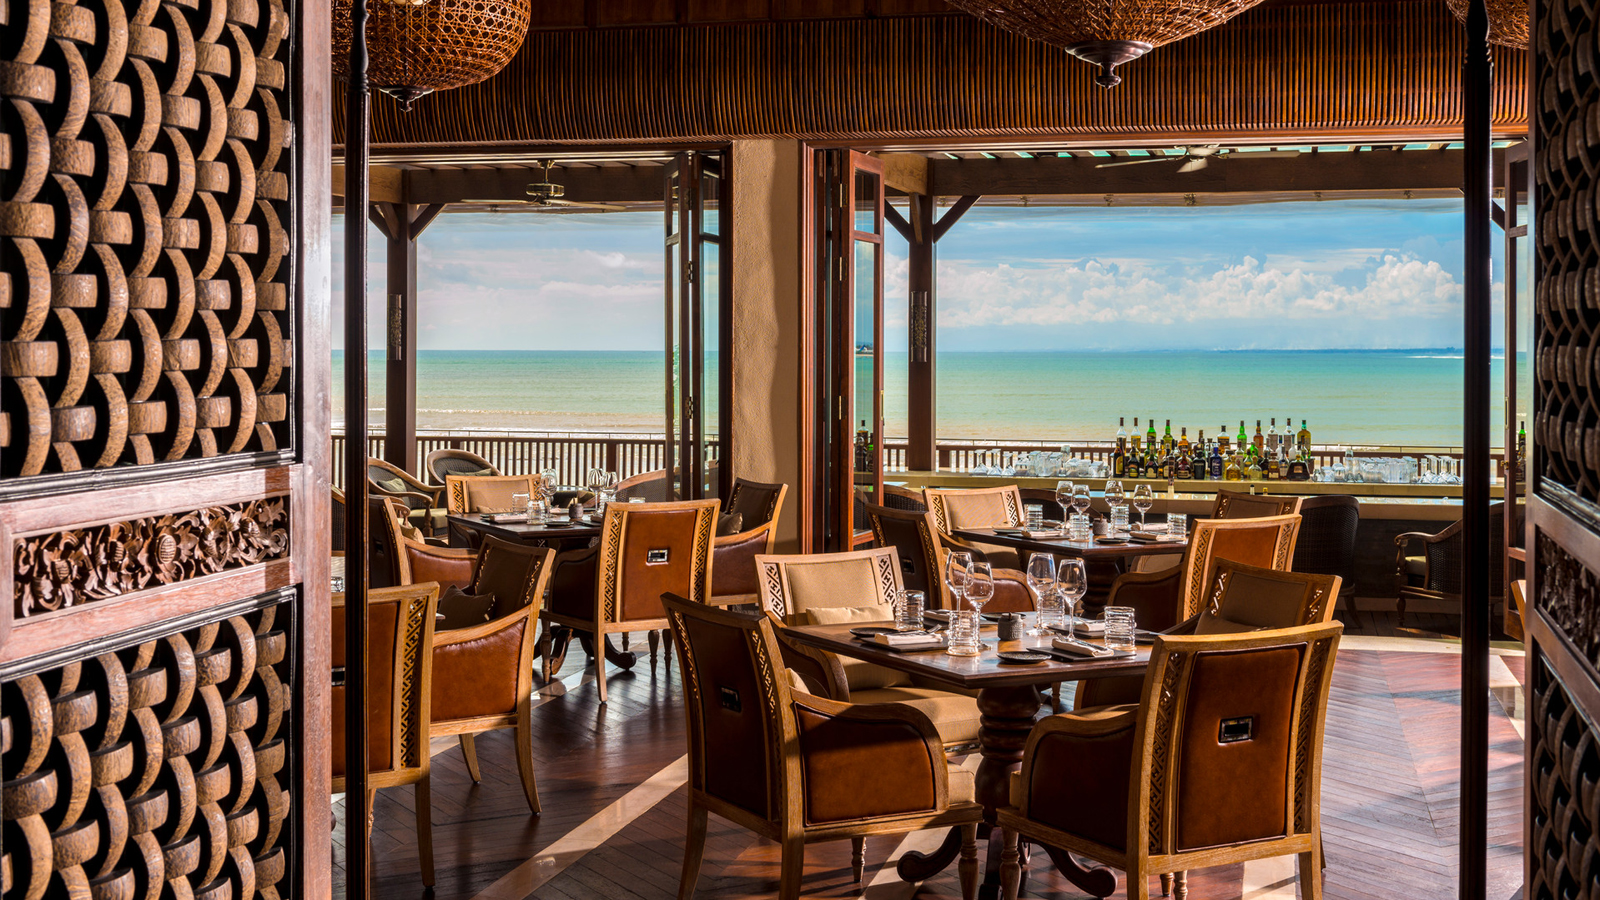 Function Room Sundara Balcony in Four Seasons Resort Bali at Jimbaran Bay